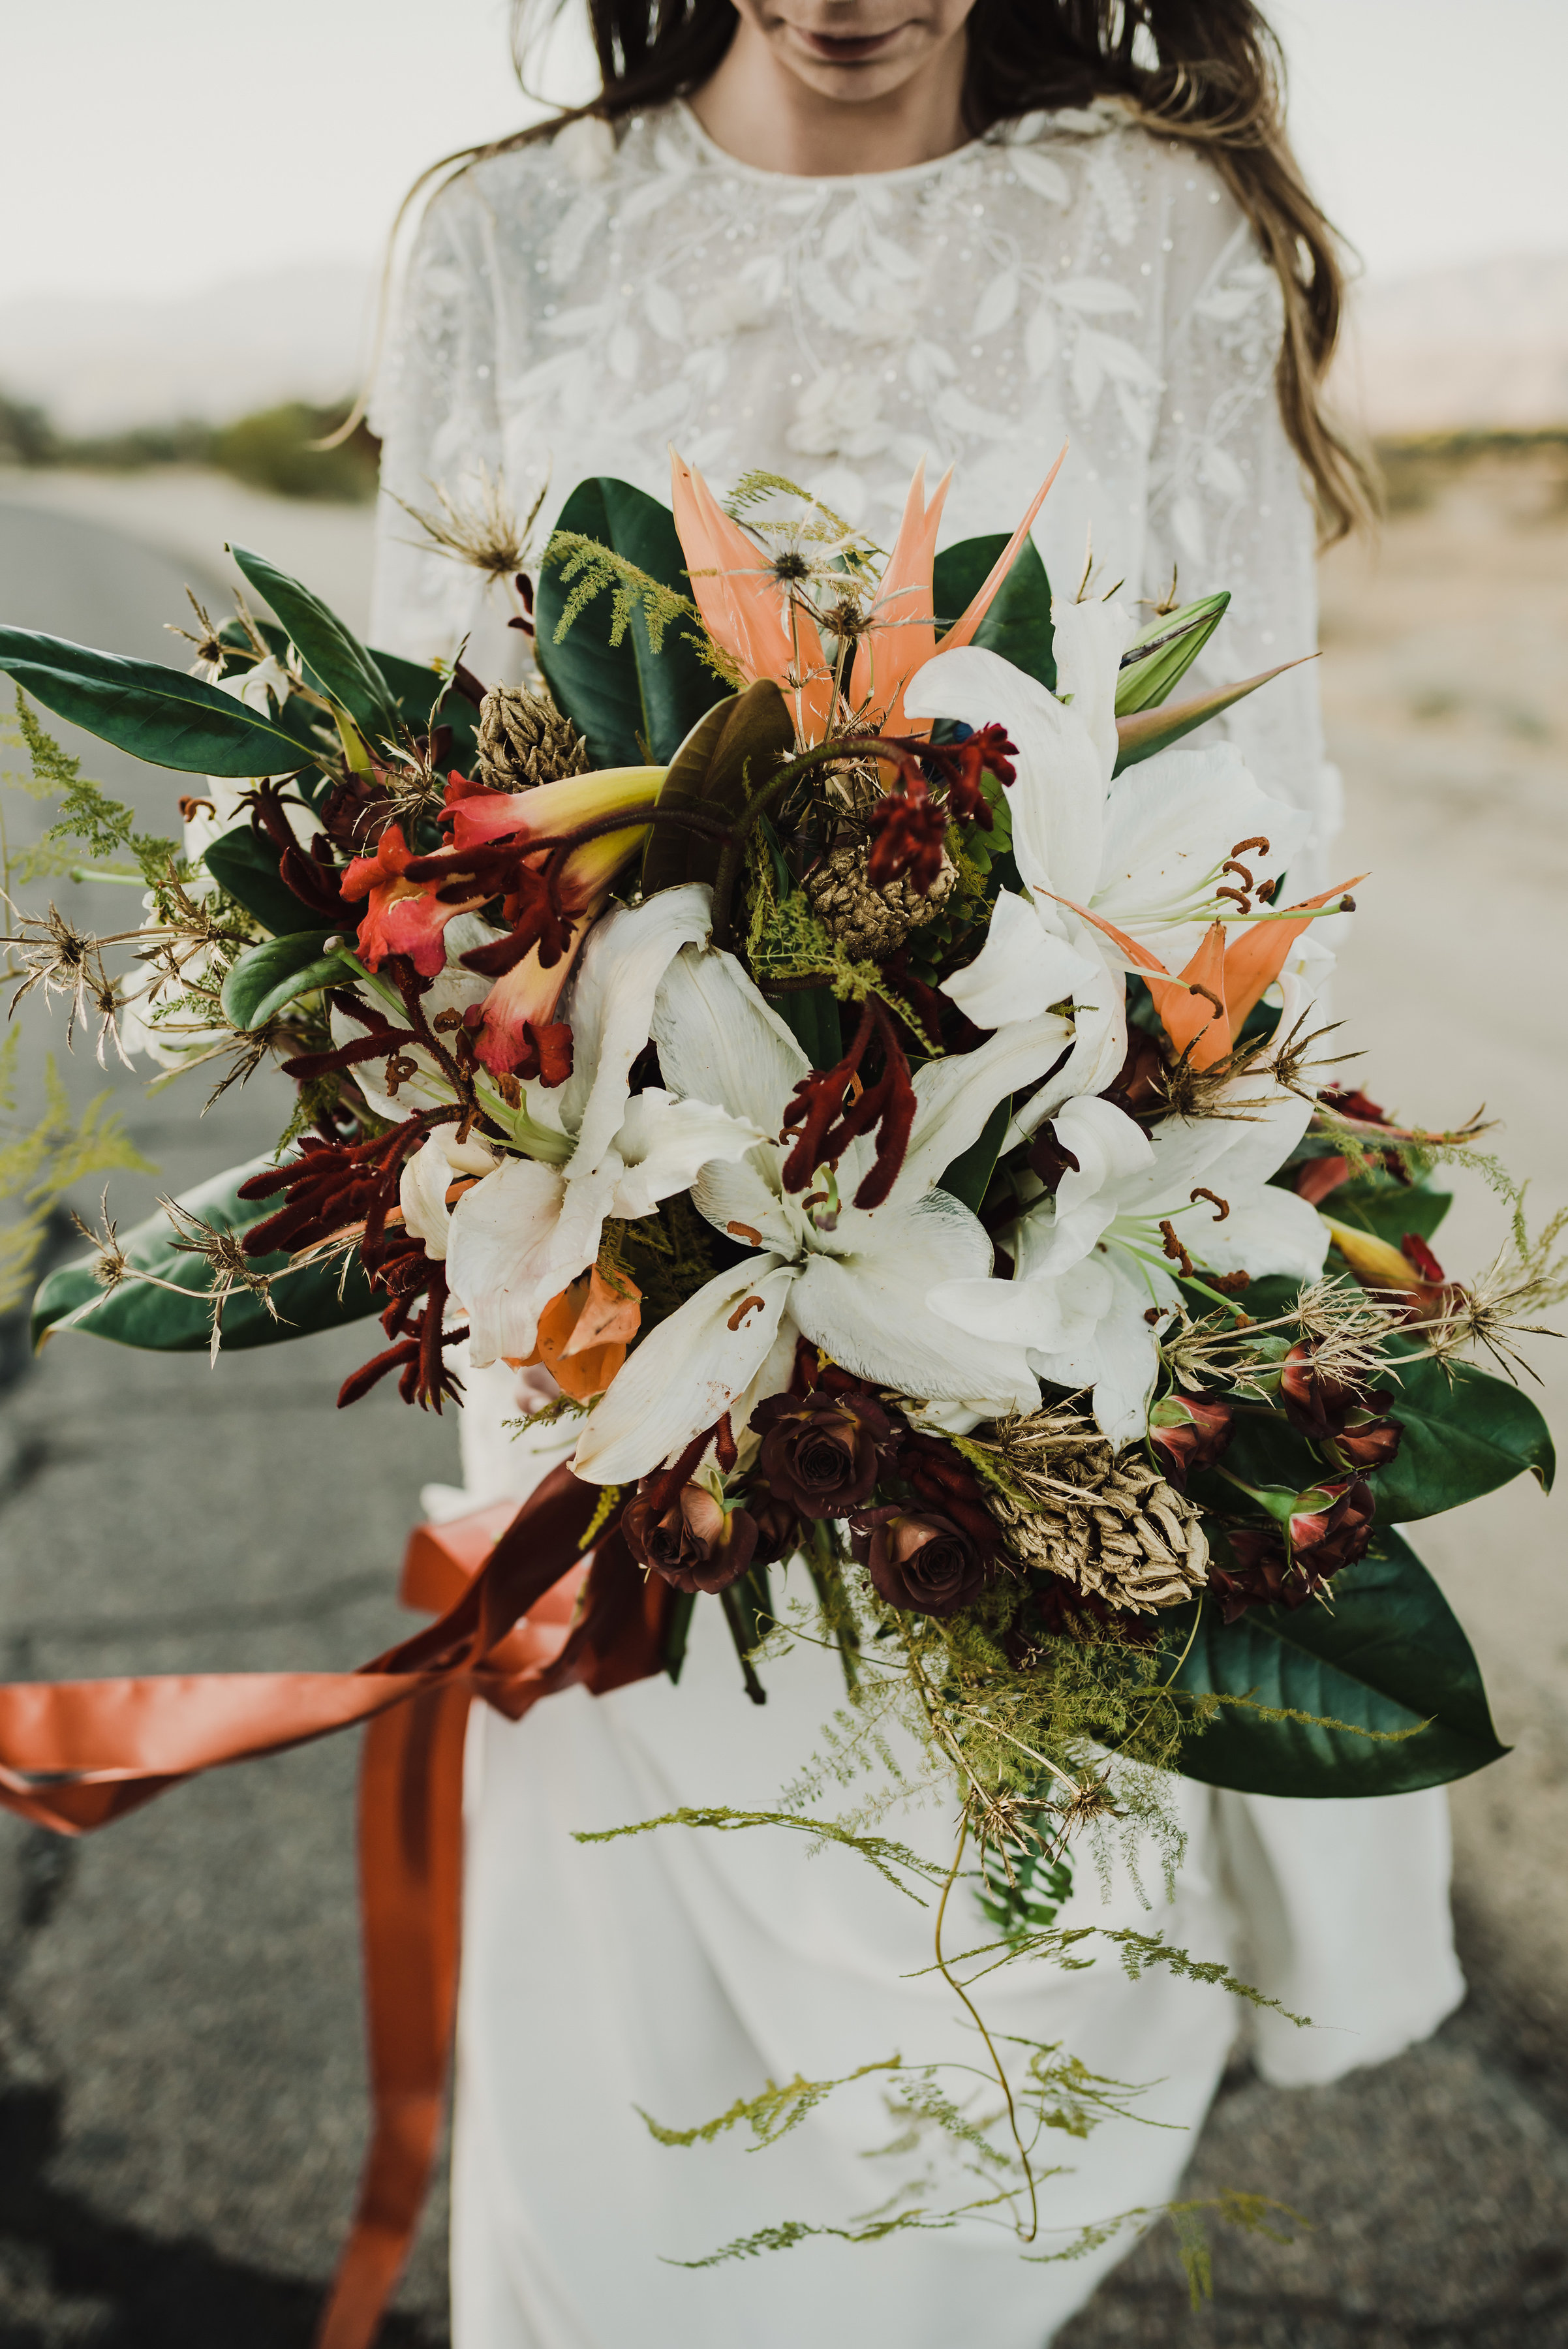 This boho desert wedding inspiration = an old school western film + a real pretty dress + perfectly rusty metal monsters.